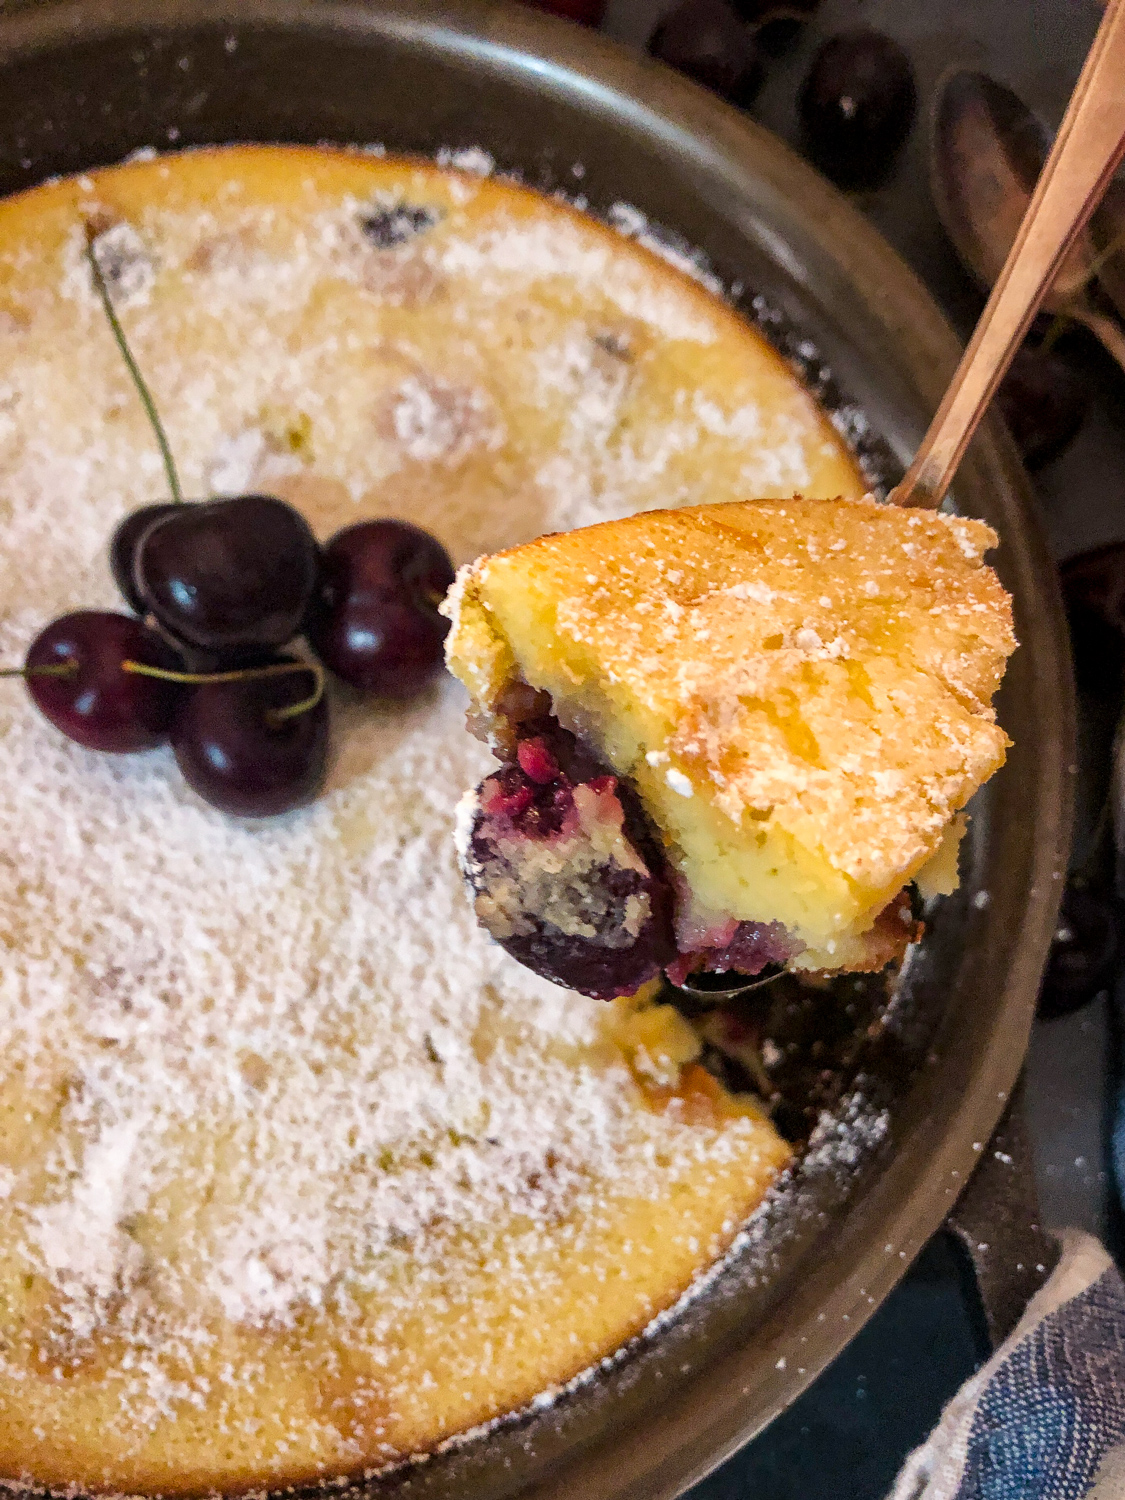 A bite of cherry clafoutis being removed from the skillet.